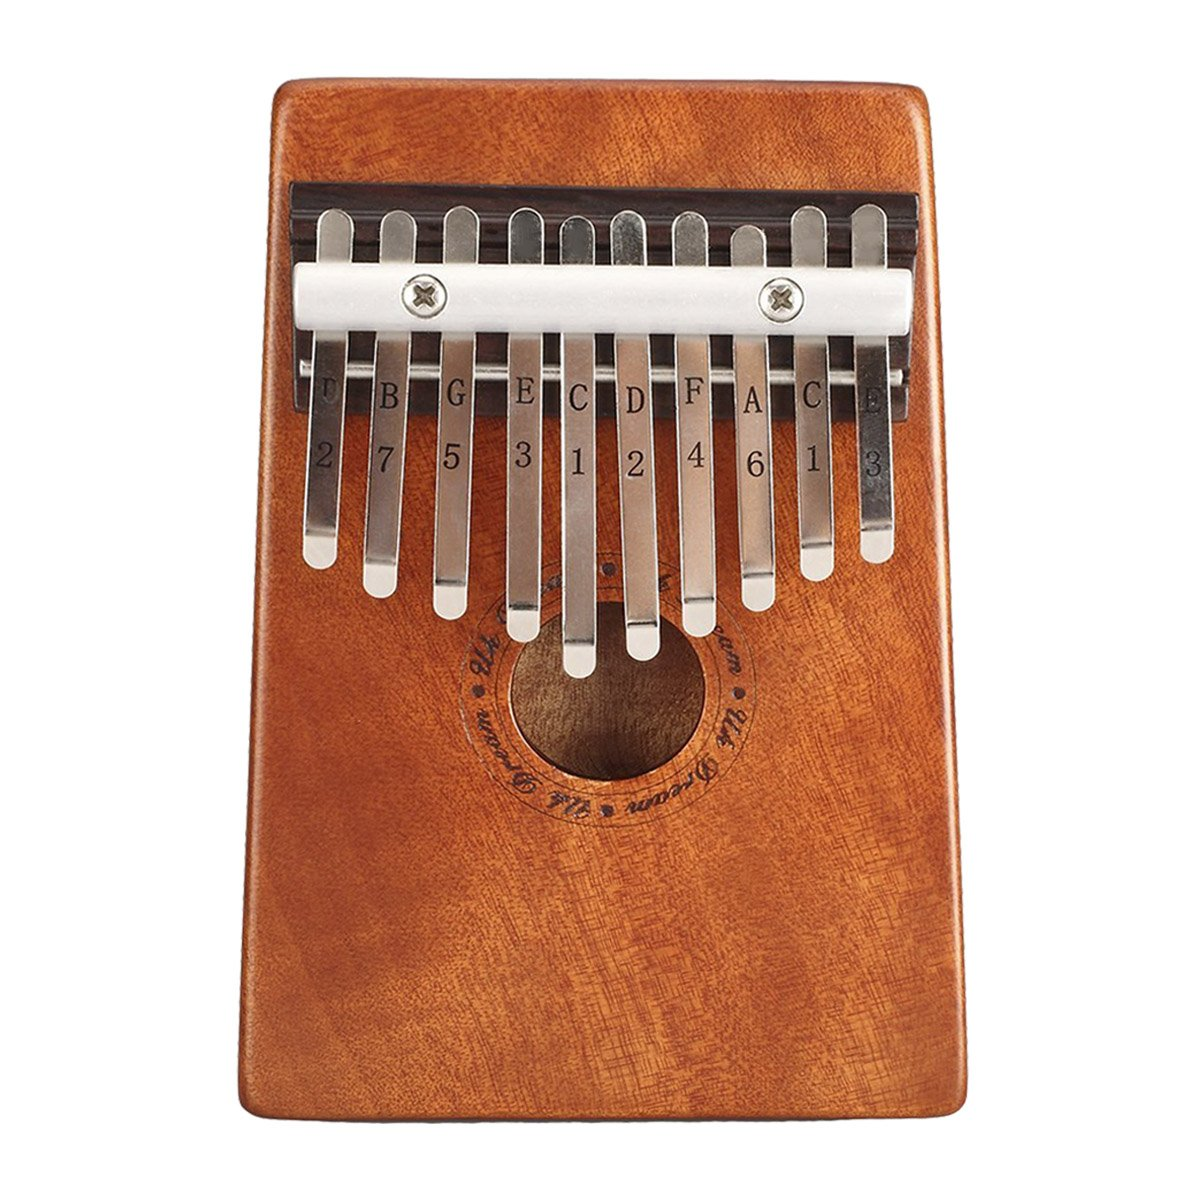 UK Dream 10 Key Kalimba Thumb Piano | Beautiful Mahogany Thumb Harp | An African Thumb Piano For Kids Is A Perfect Introduction To Music | The Traditional Kalimba Instrument Is Perfect For A Beginner Changyun